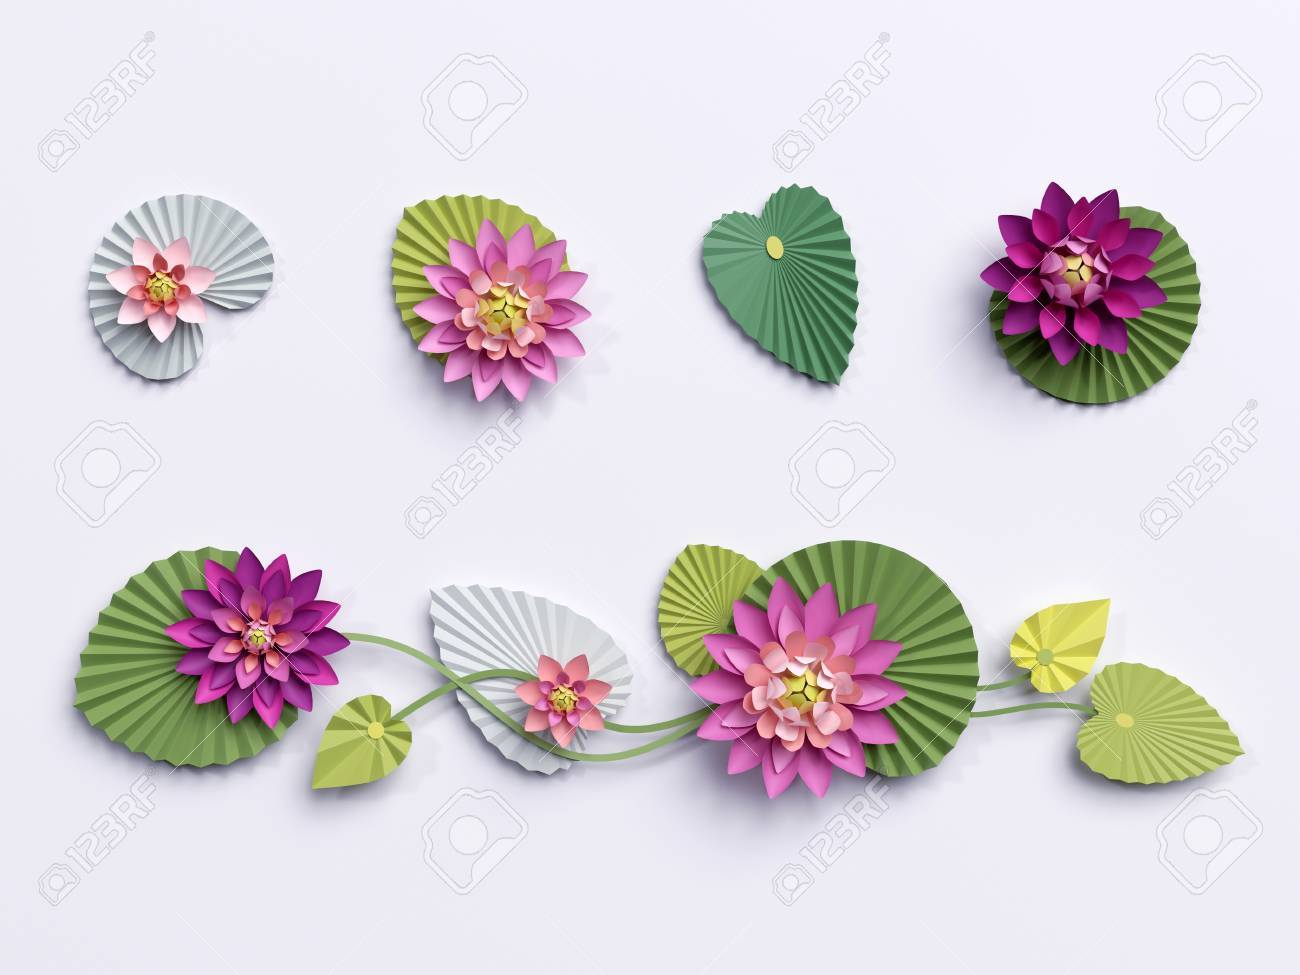 3d Render Paper Lotus Flowers Wall Decoration Border Pink